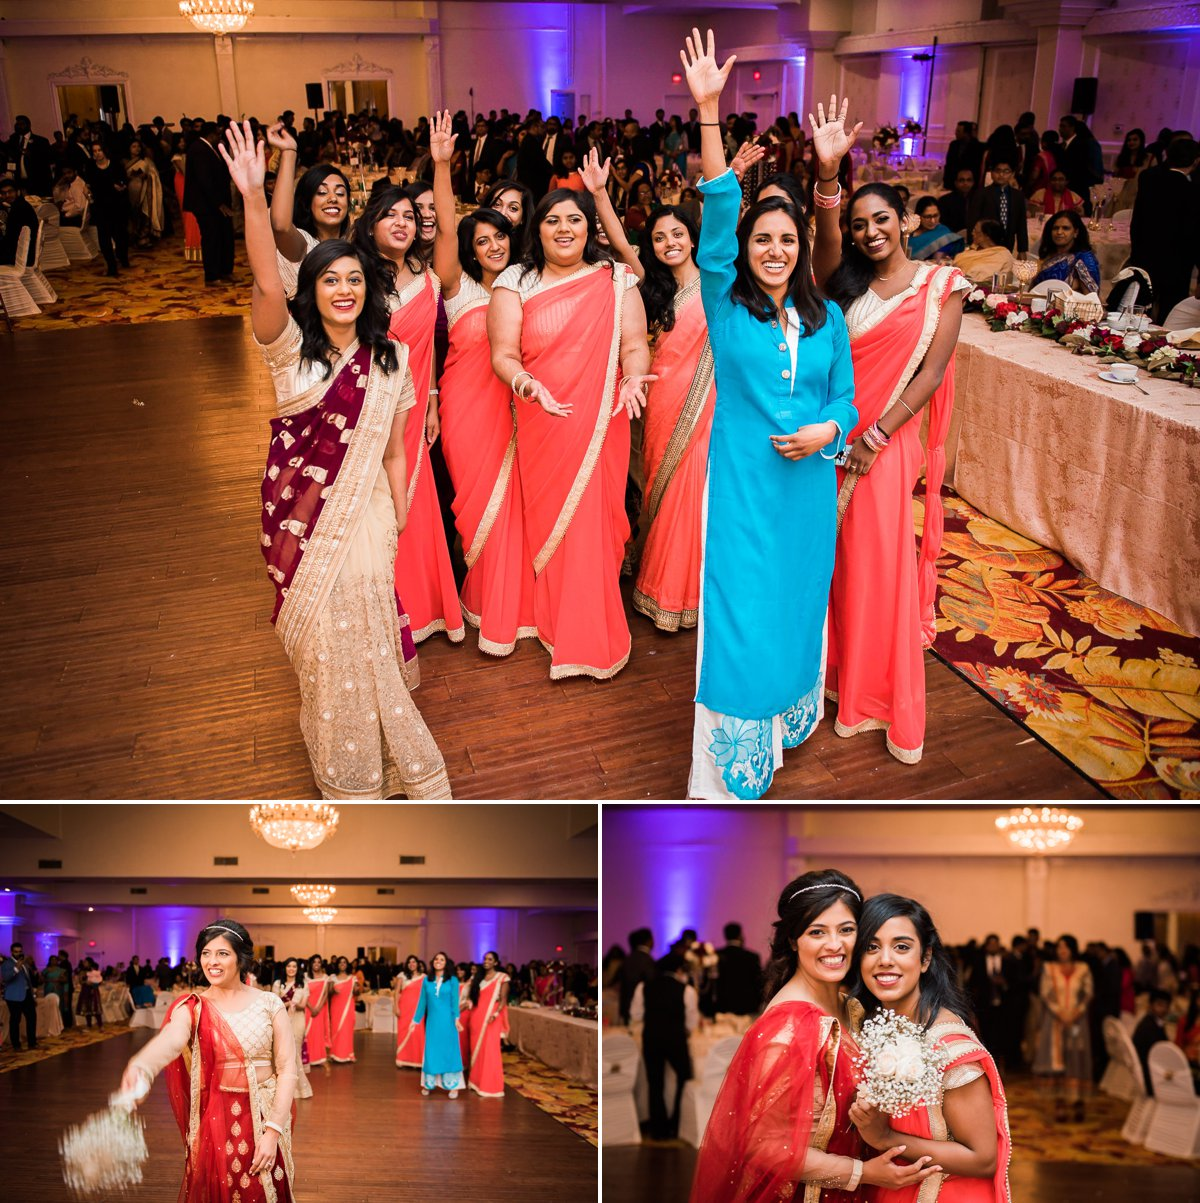 Grace-Allen Indian Wedding Reception Photo with friends